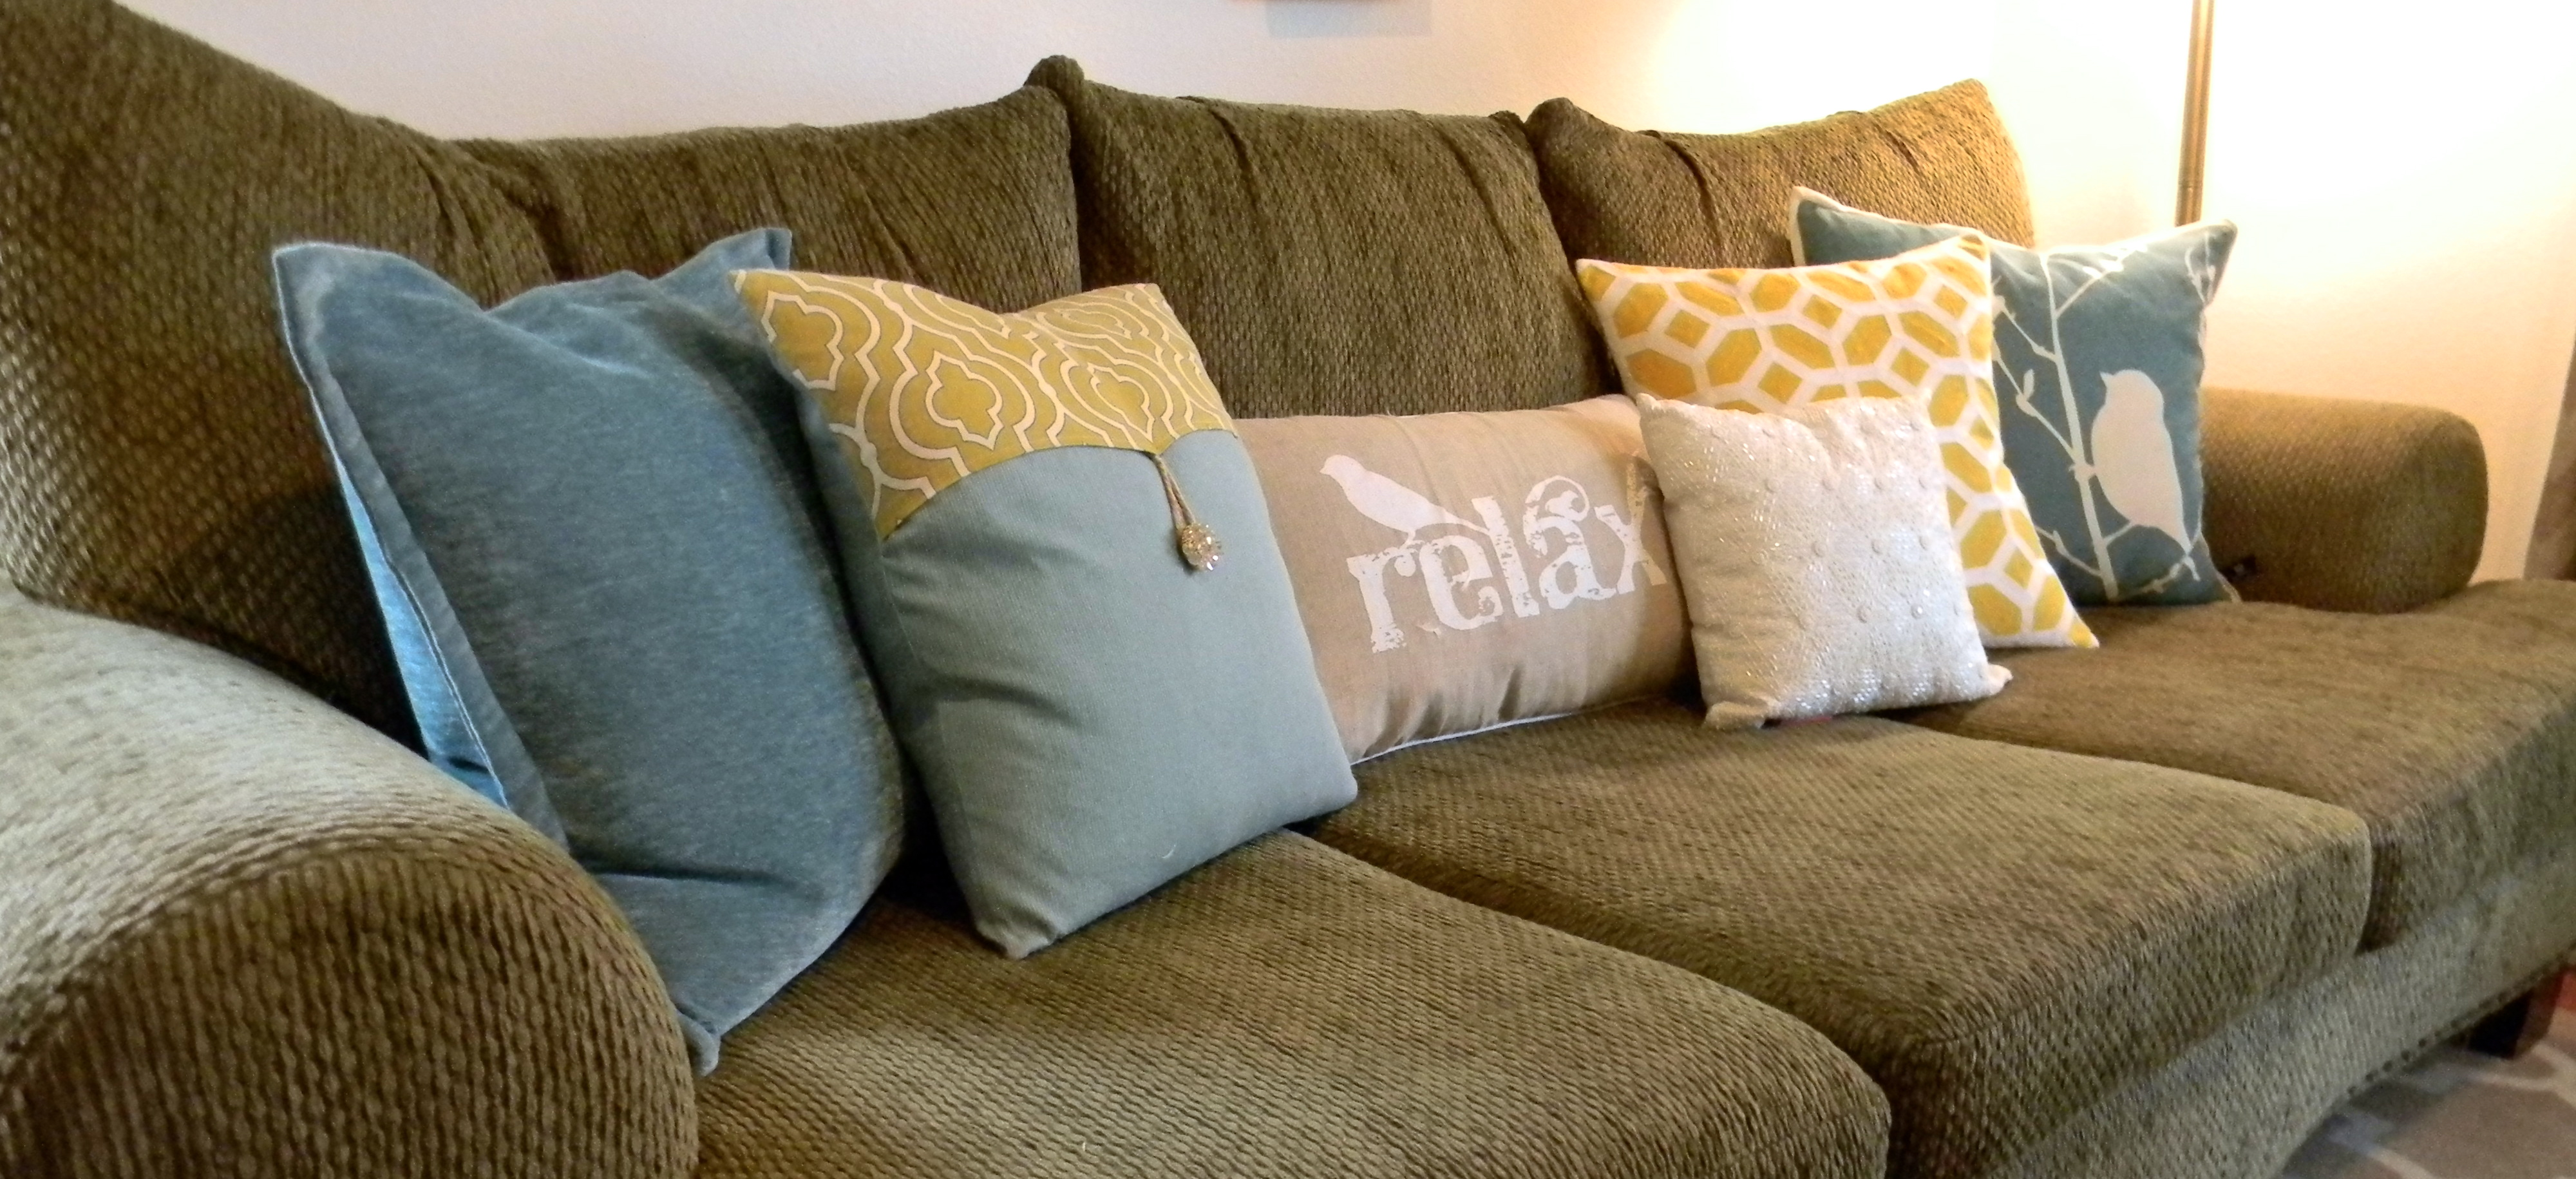 fancy sofa pillows best fabric for covers pillow decorating ideas decorative throw